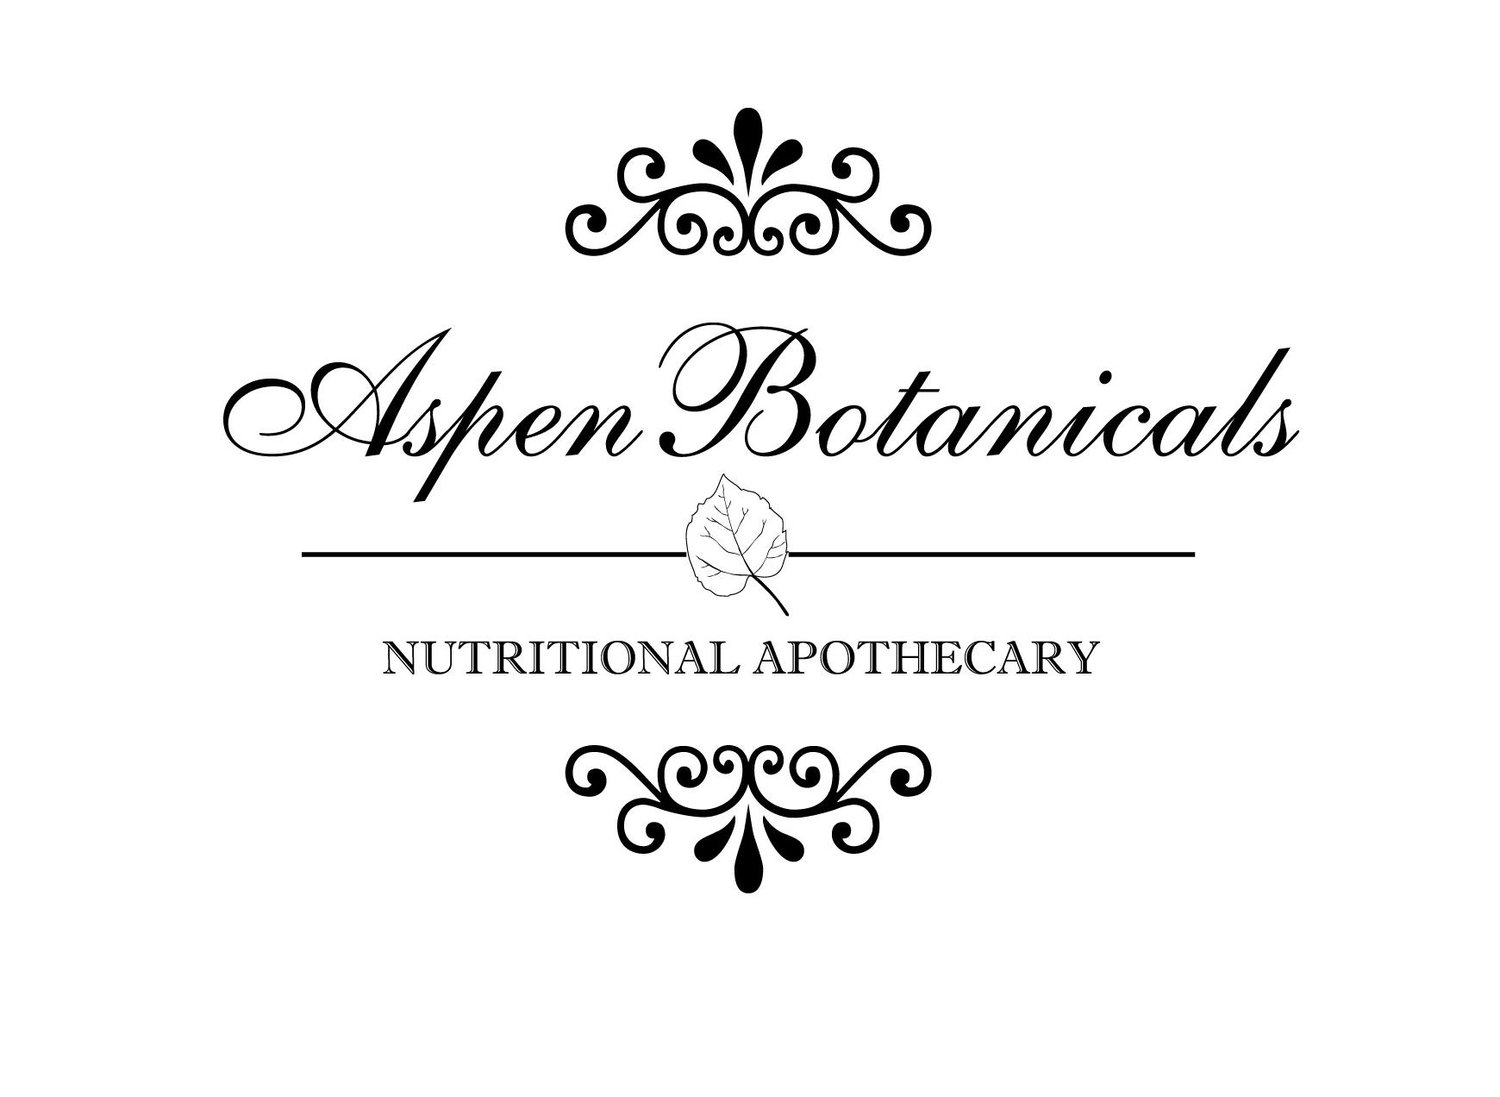 Aspen Botanicals Nutritional Apothecary